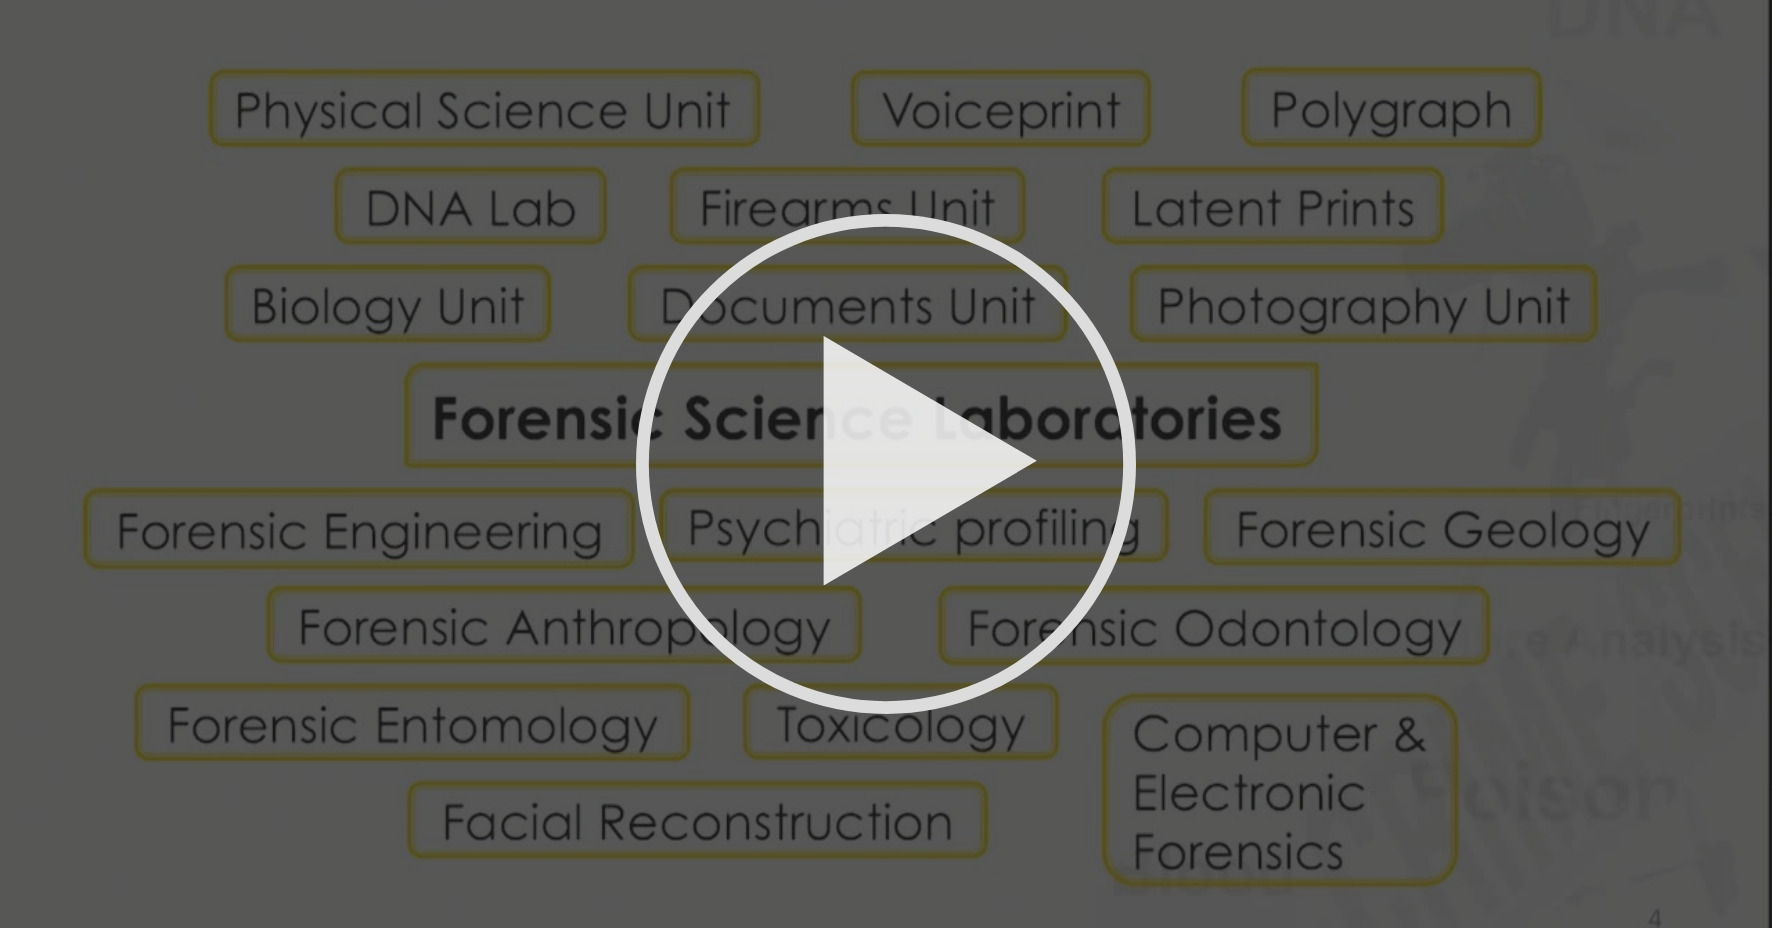 Week 1 8 Forensic Laboratories Introduction To Forensic Science Coursera